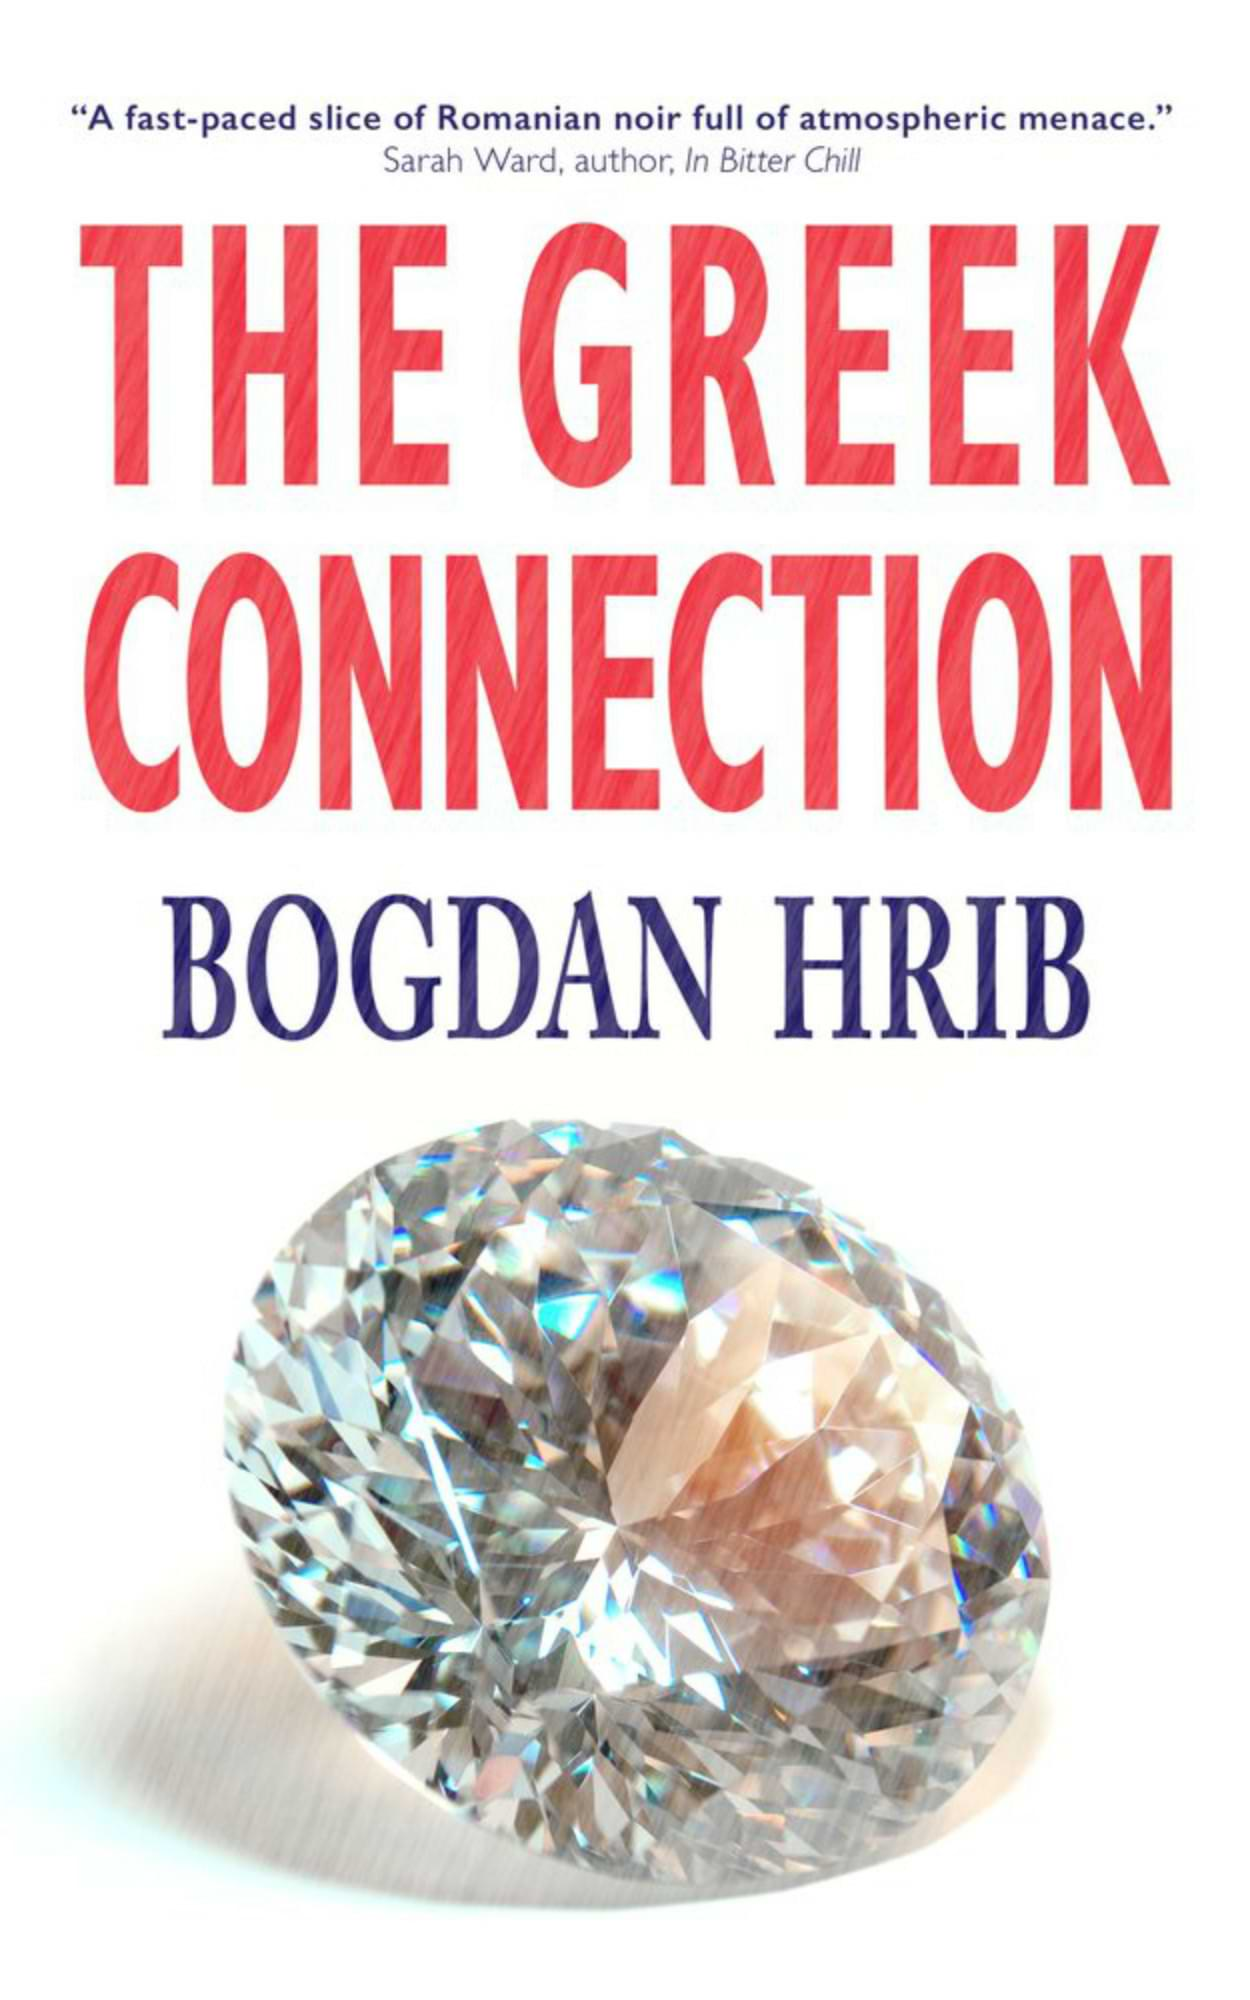 The Greek Connection by Bogdan Hrib